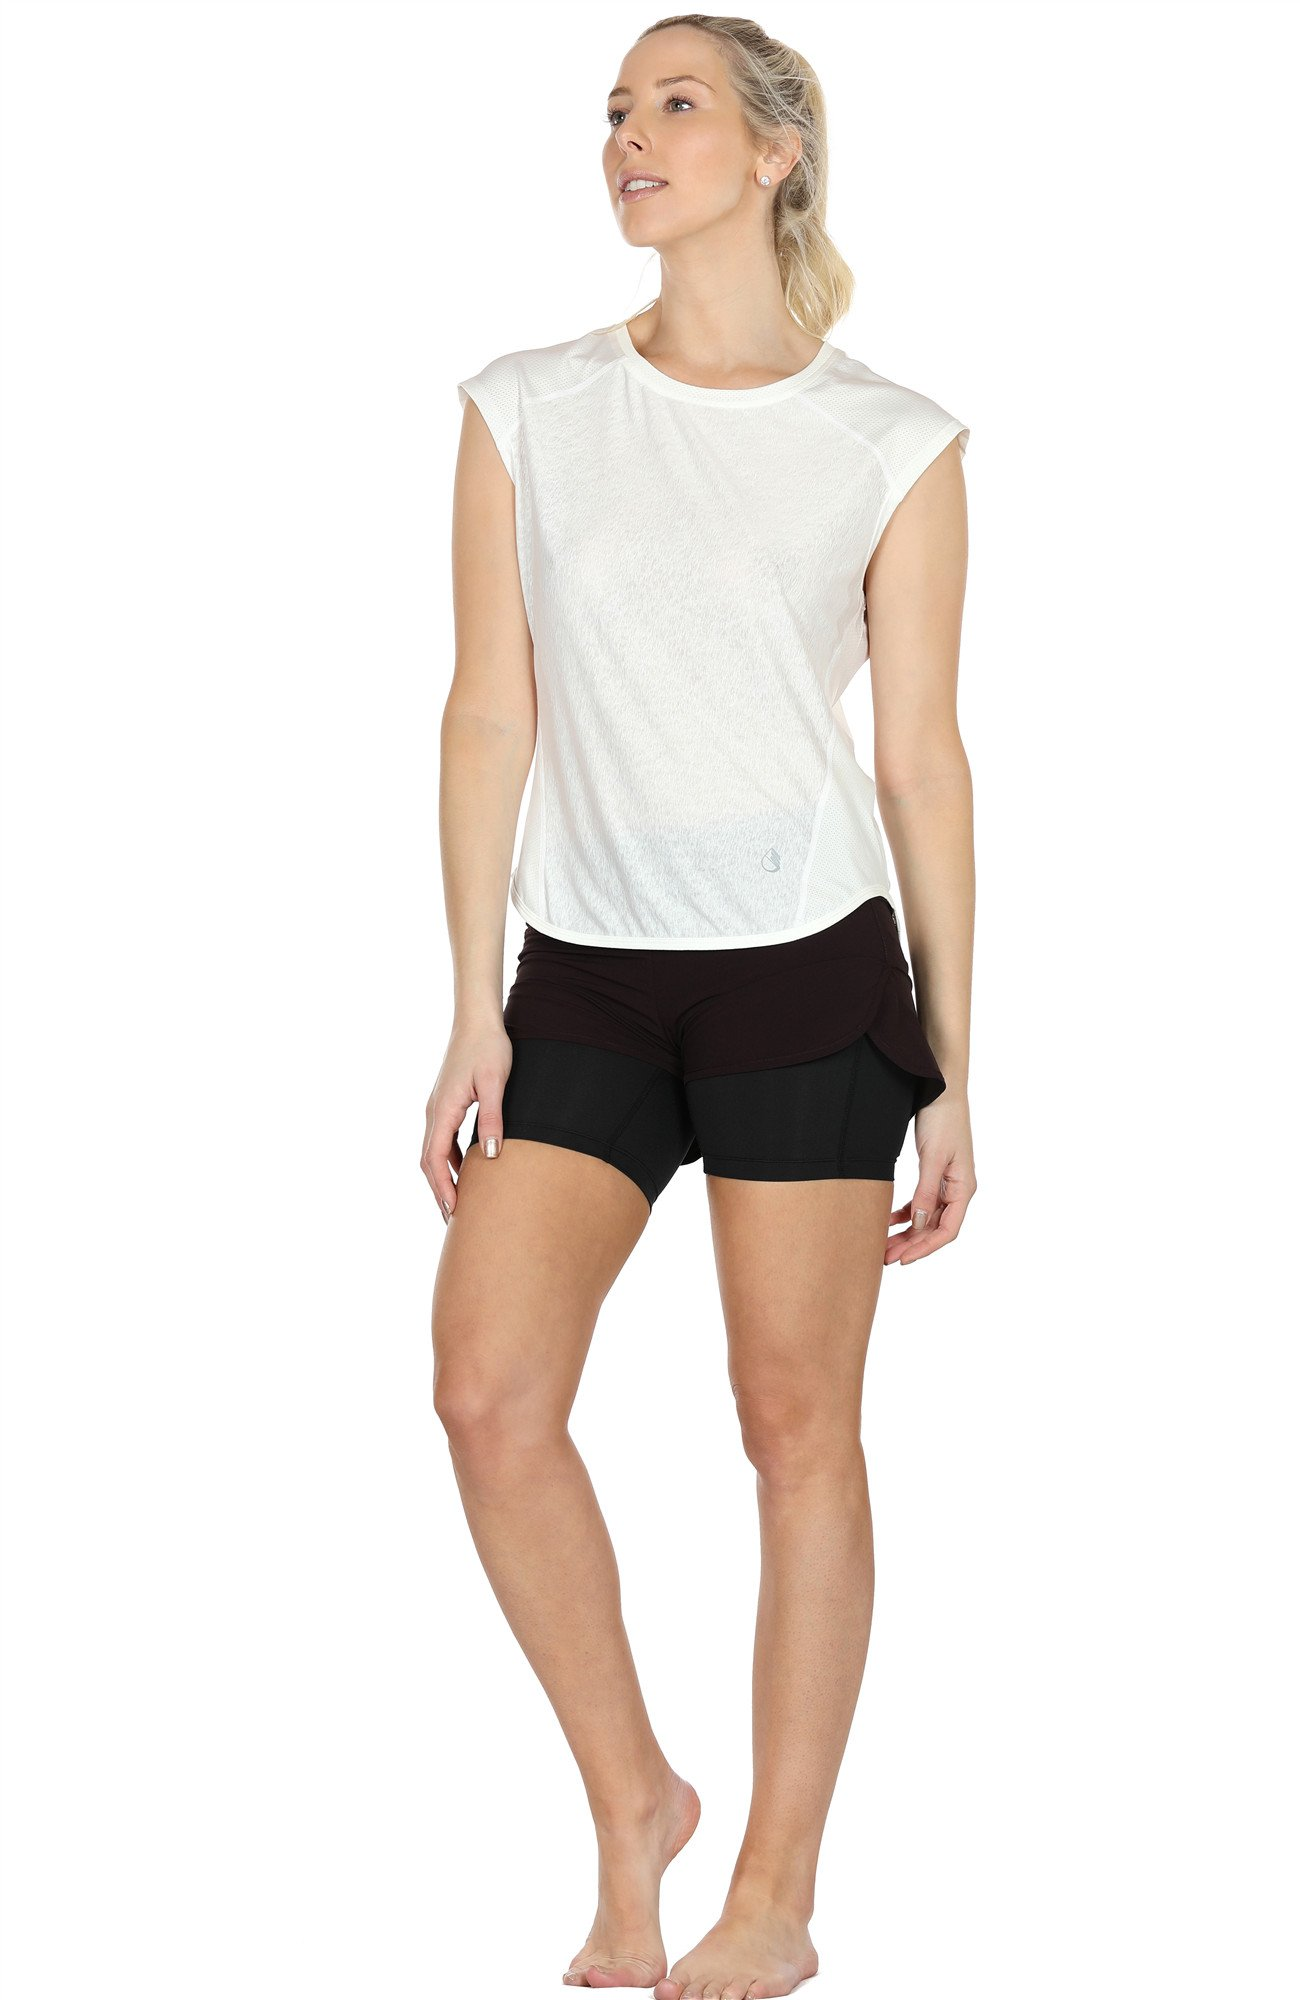 icyZone Yoga Tops Activewear Raglan Workout tank tops Fitness Sleeveless Shirts for Women (M, White)